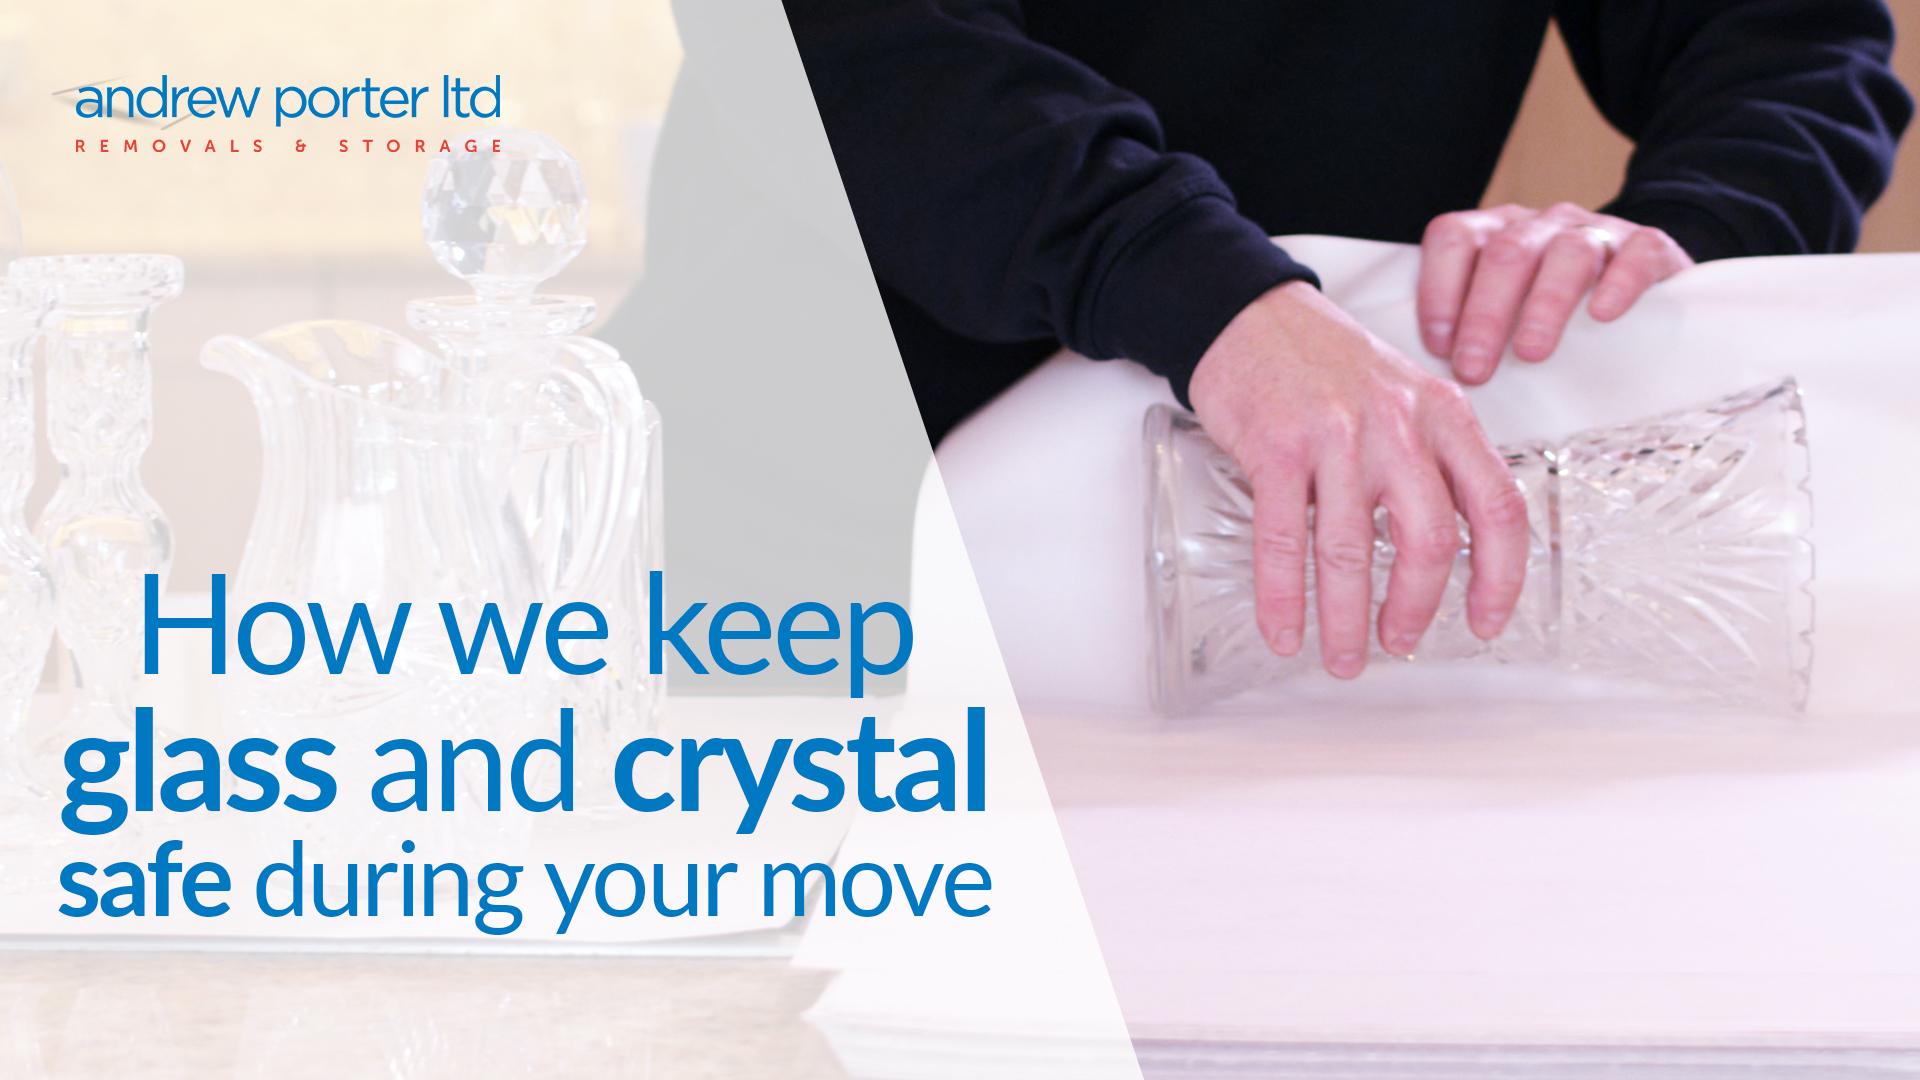 Keep your glass and crystal safe during your move